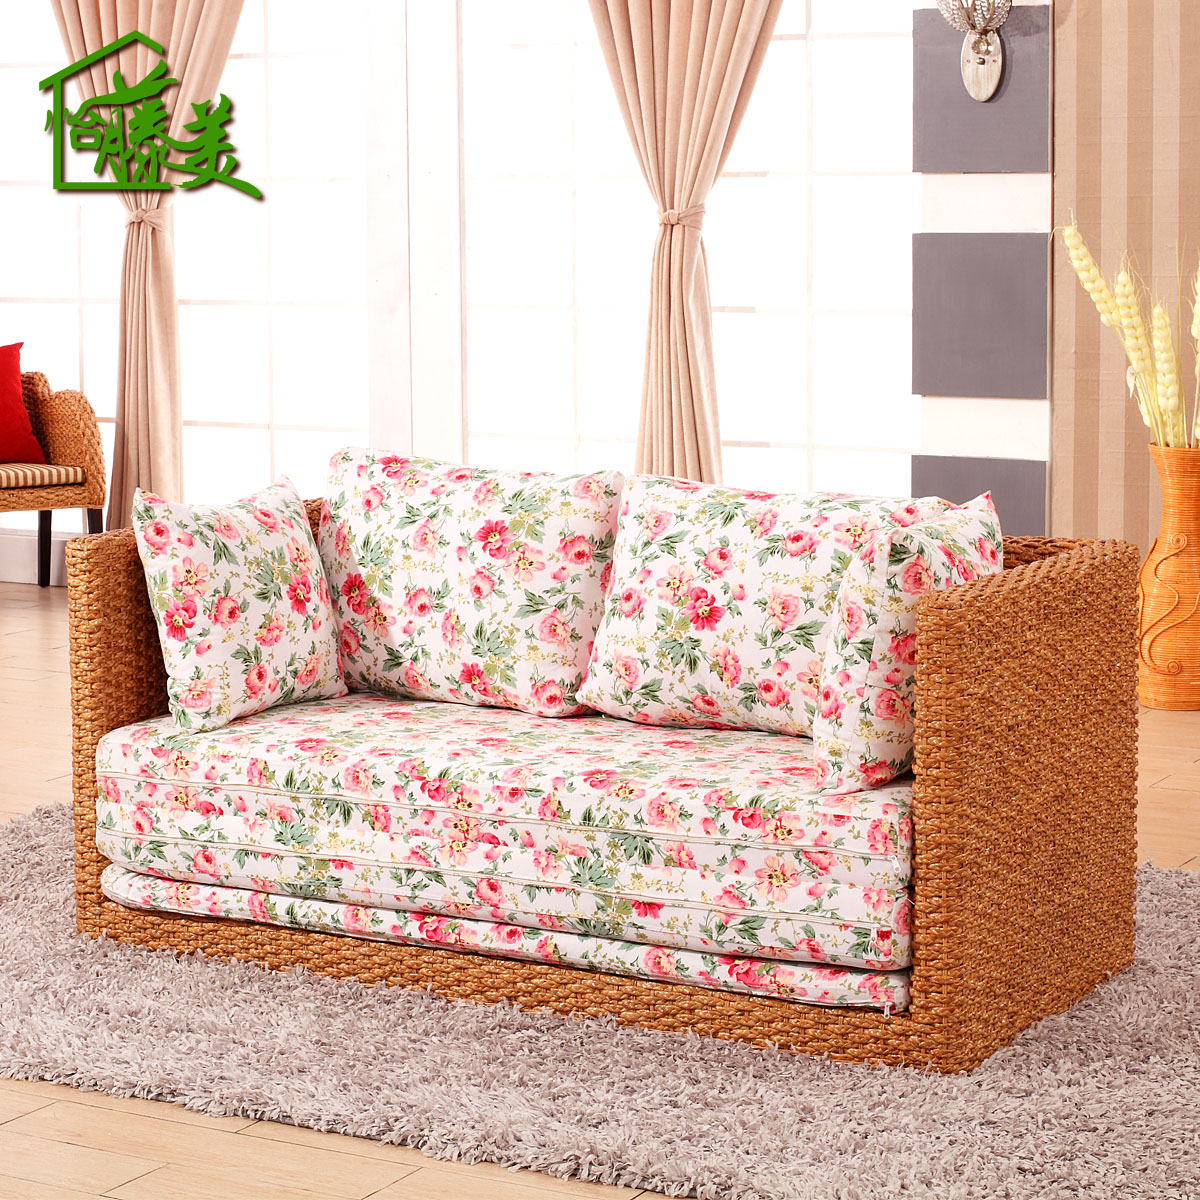 Mei yi rattan furniture rattan cane rattan sofa bed folding small apartment living room pastoral double